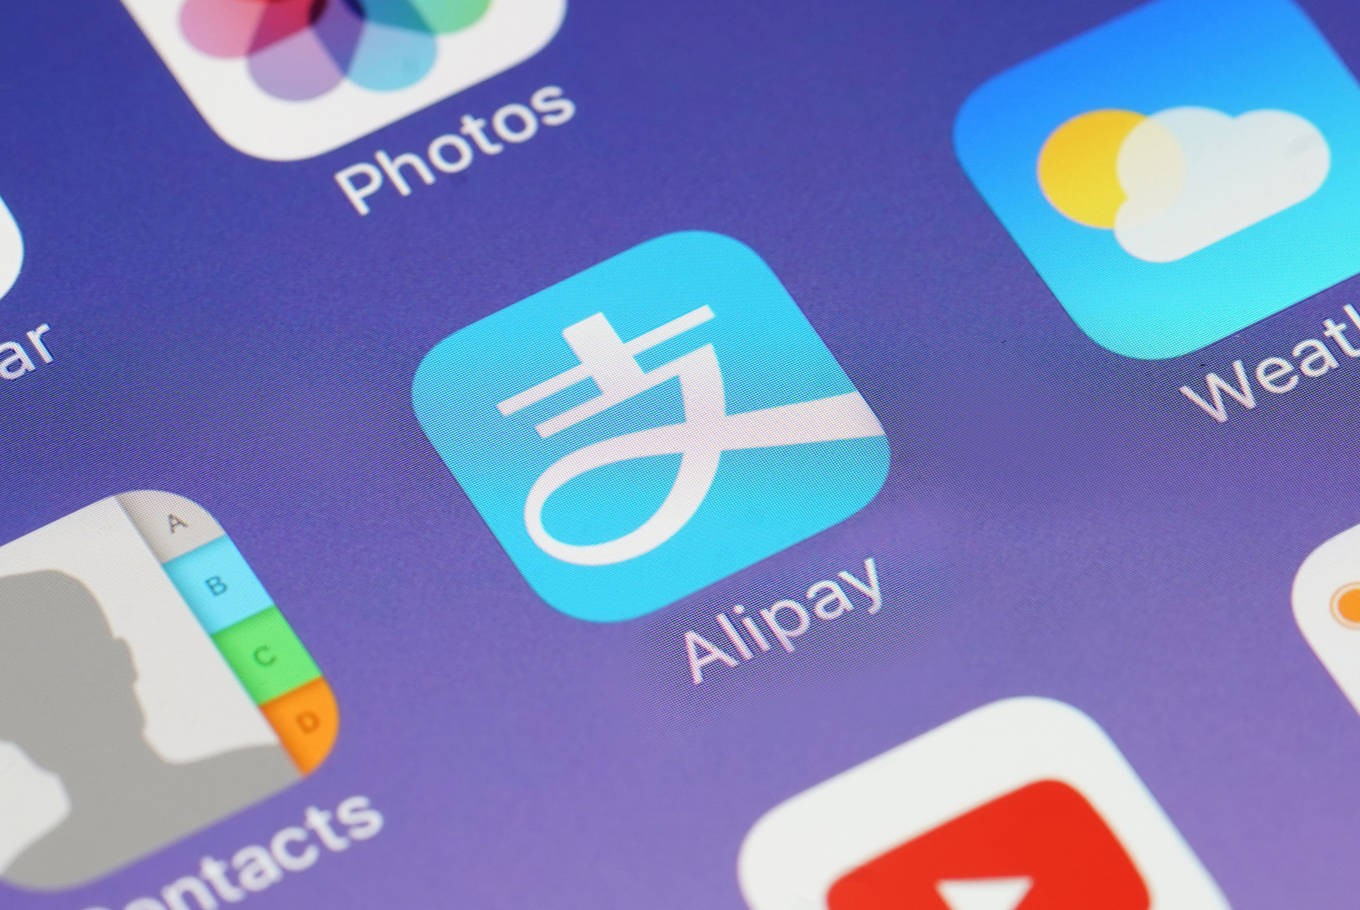 Payment with WeChat Pay, Alipay only for foreign tourists: BI